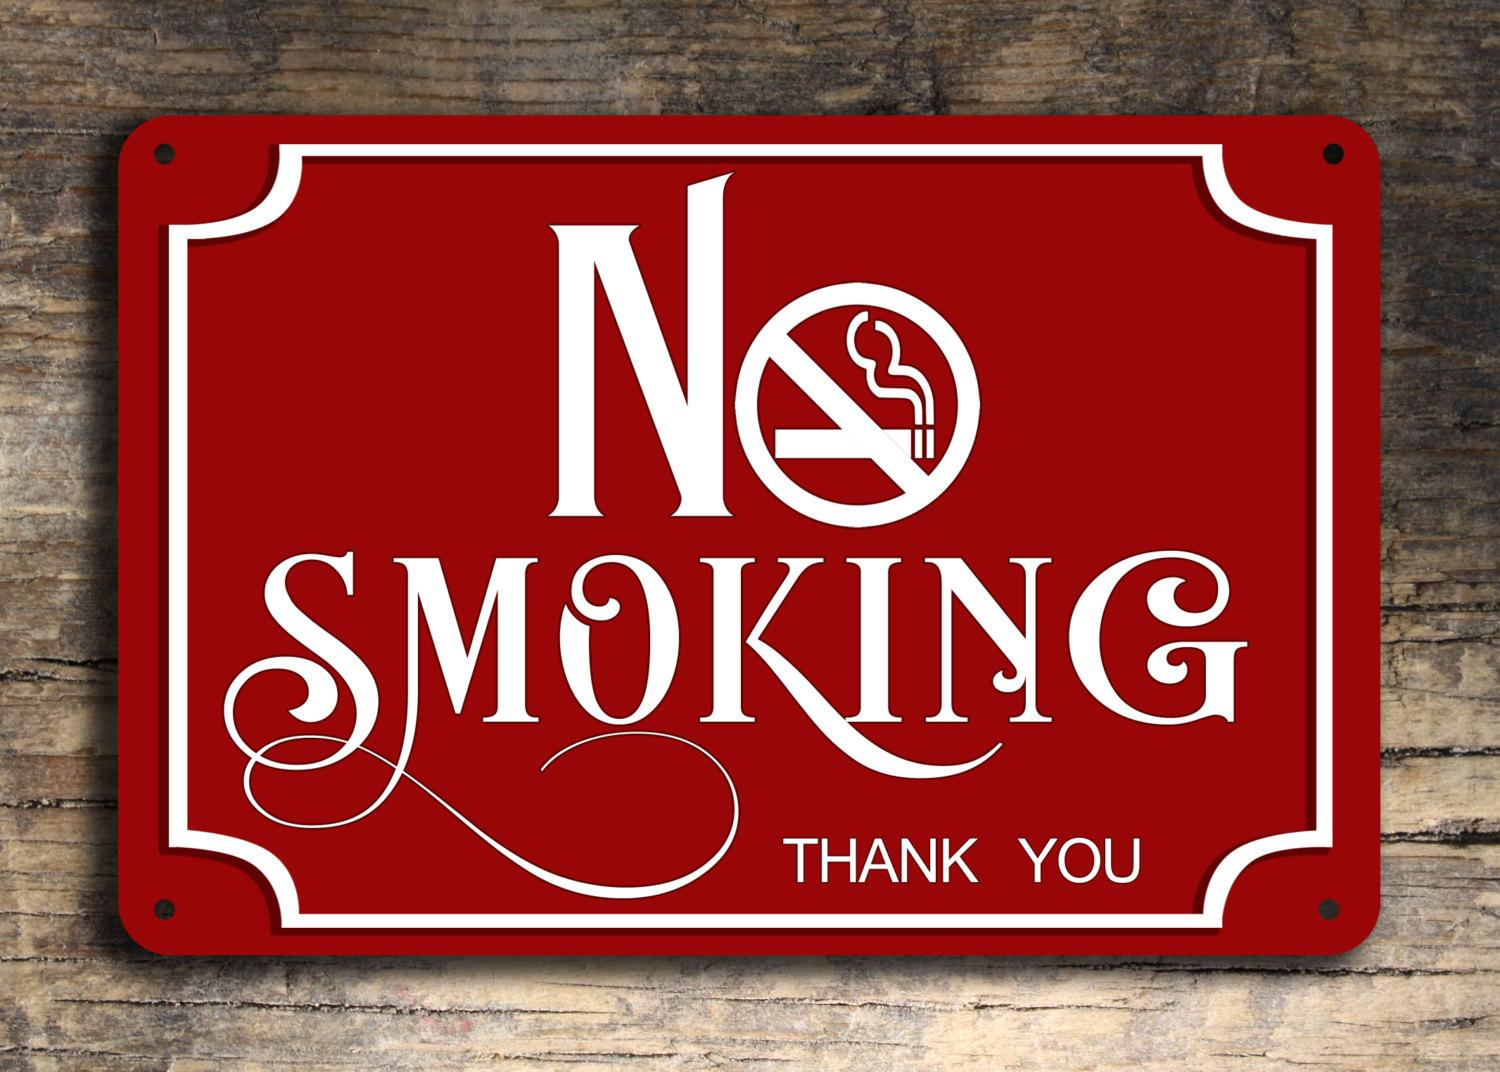 banning smoking in public places facts